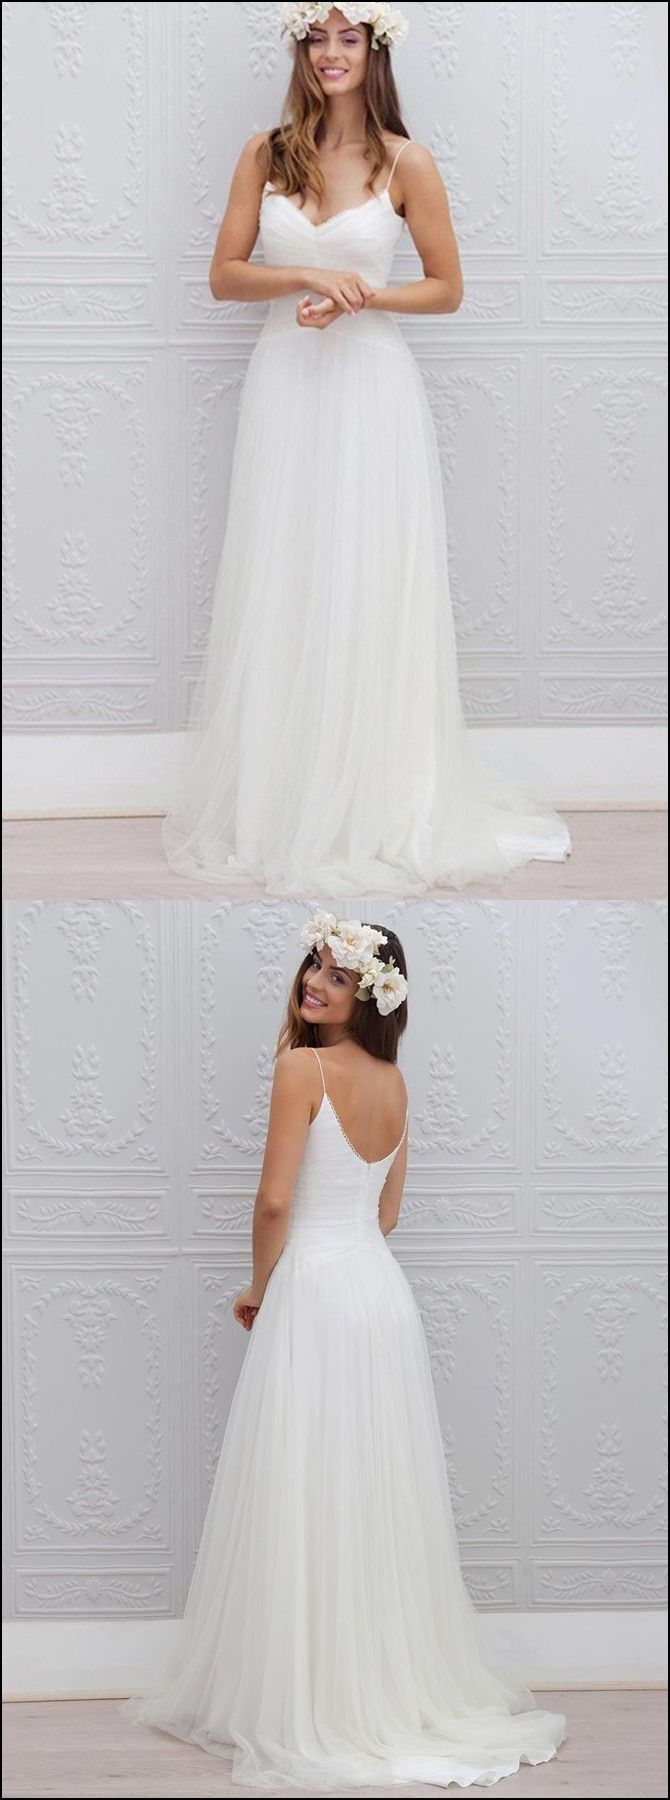 Bride and gown glens falls dresses and gowns ideas pinterest gowns